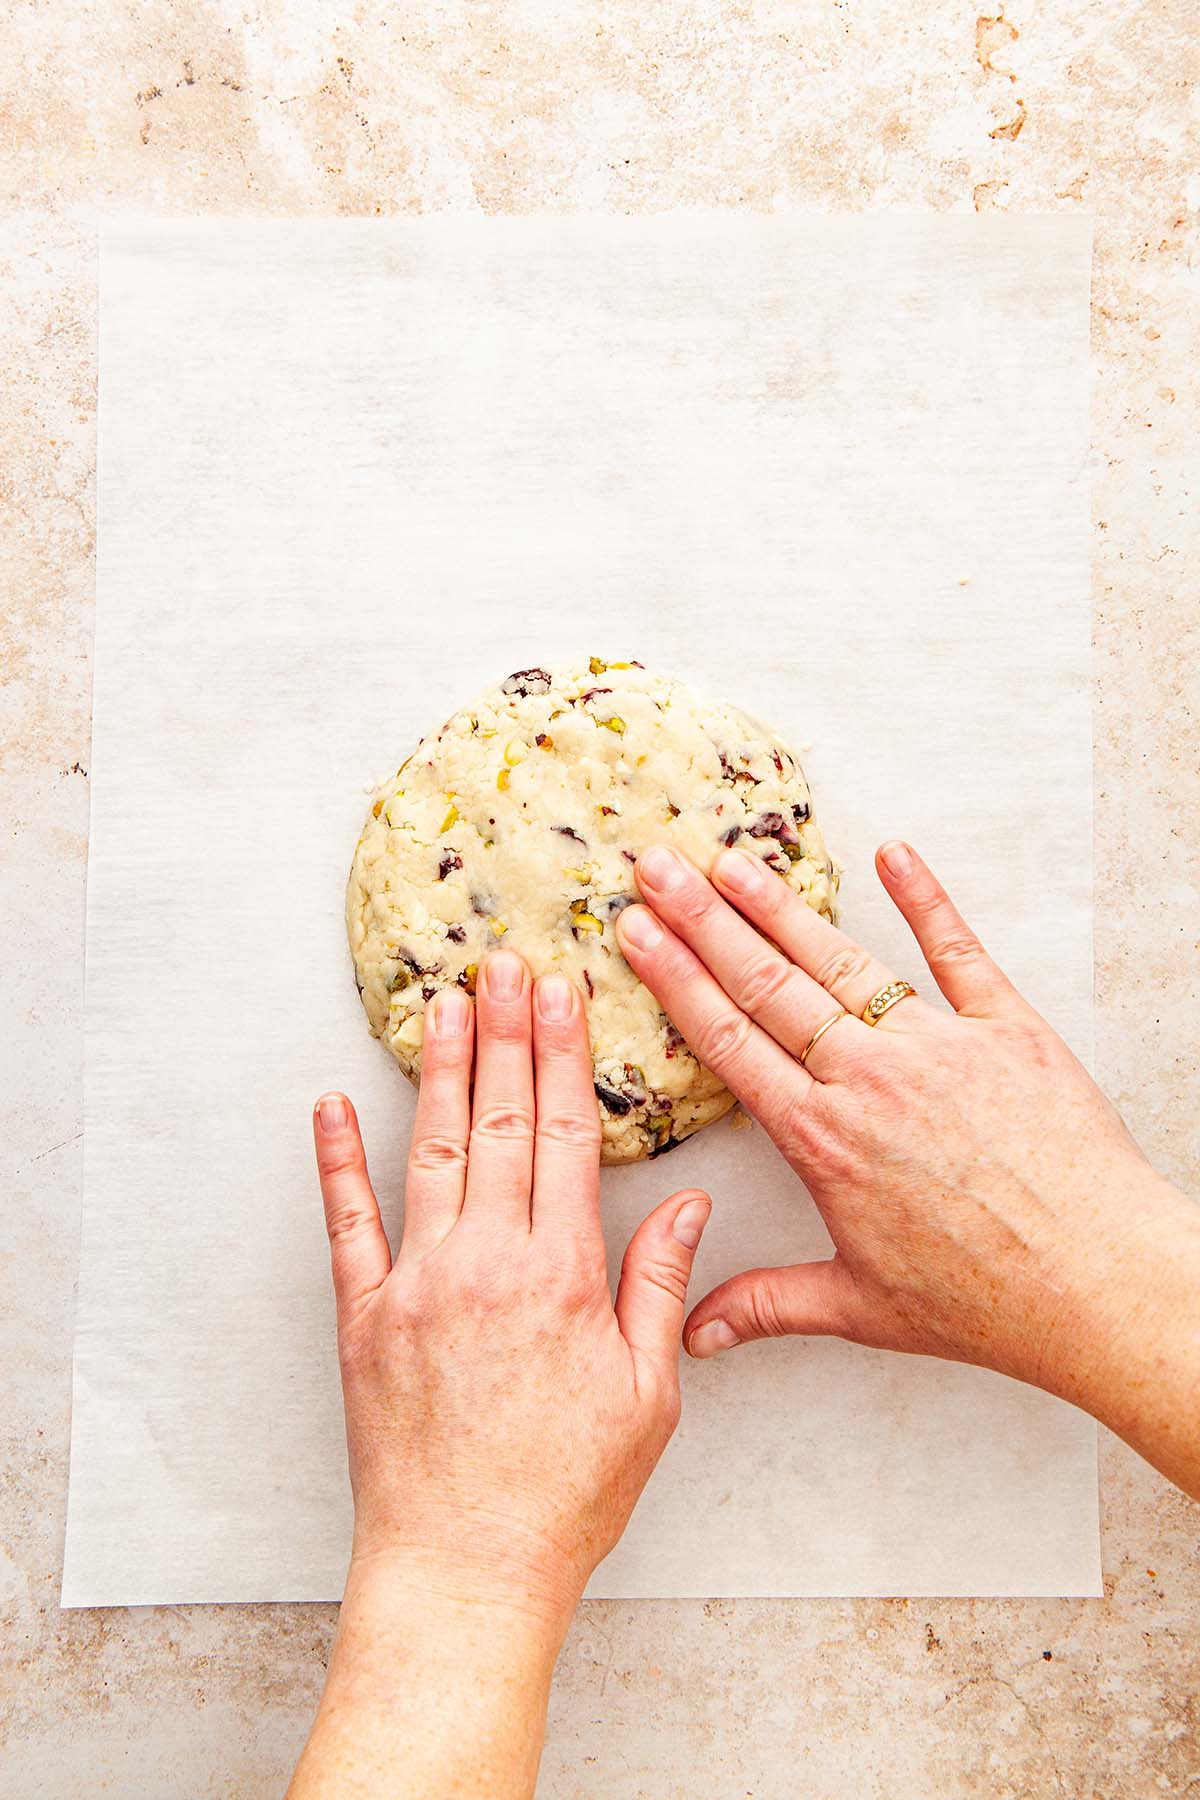 Hands pressing cookie dough into a disc on parchment paper.